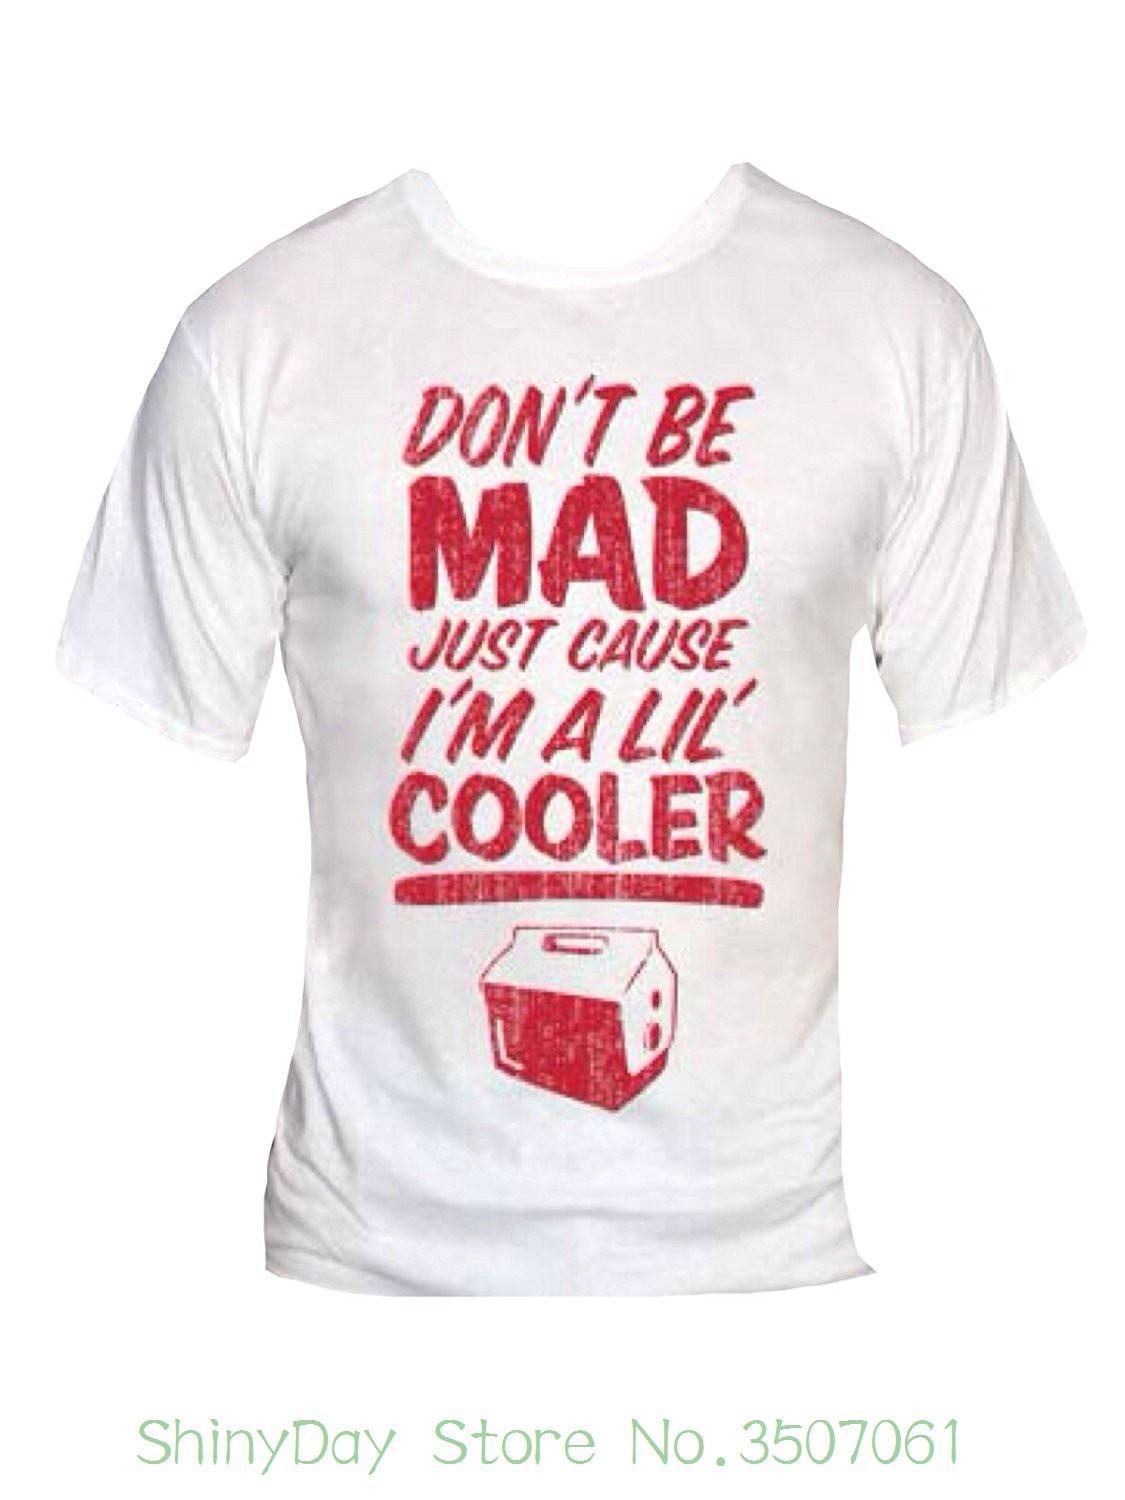 49e4584c T Shirt Hot Topic Men Short Sleeve Don't Be Mad Cause I'm A Little Cooler T- shirt-that Funny Shirt